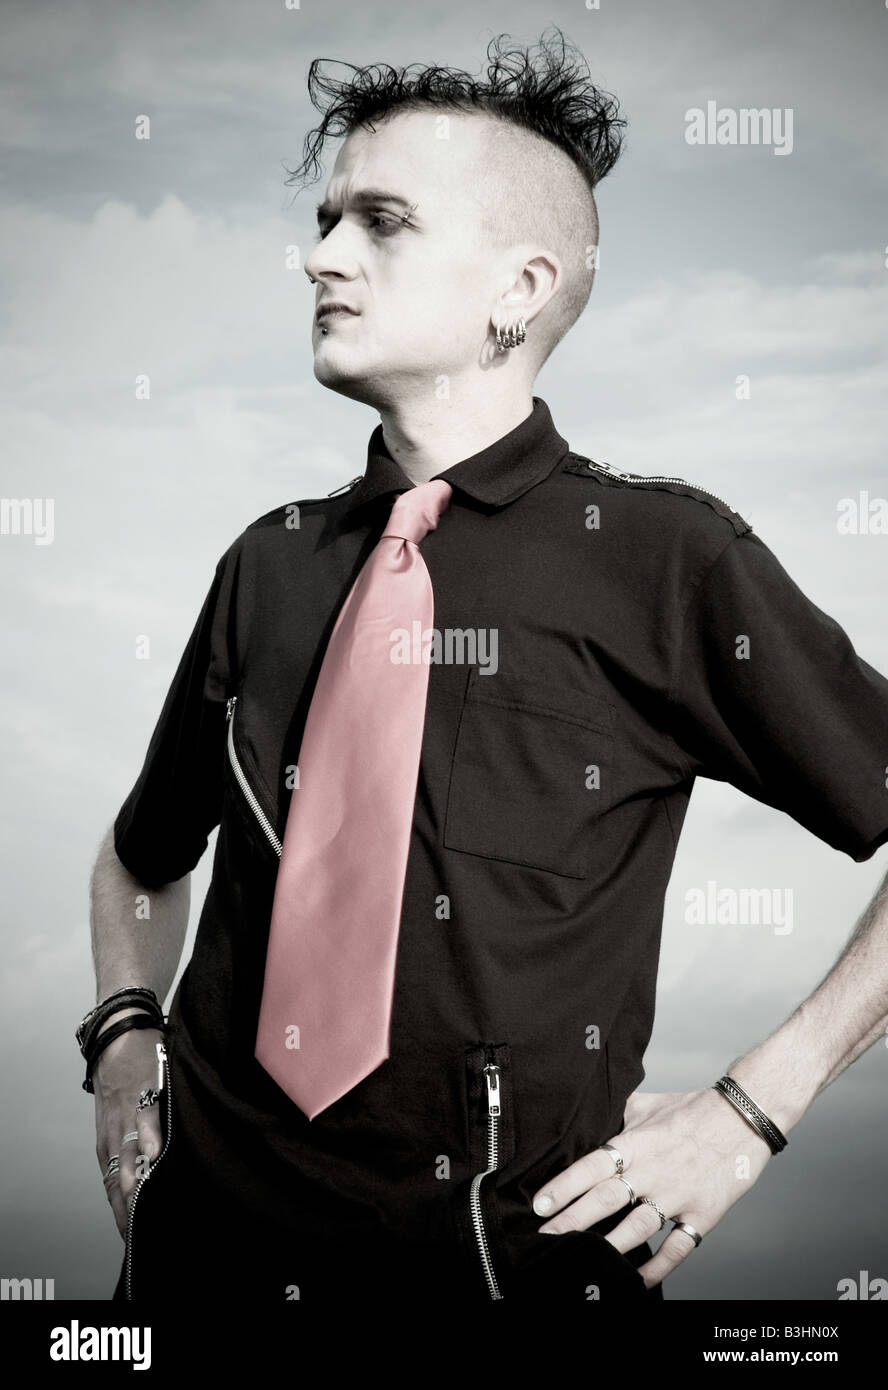 Male Goth High Resolution Stock Photography And Images Alamy